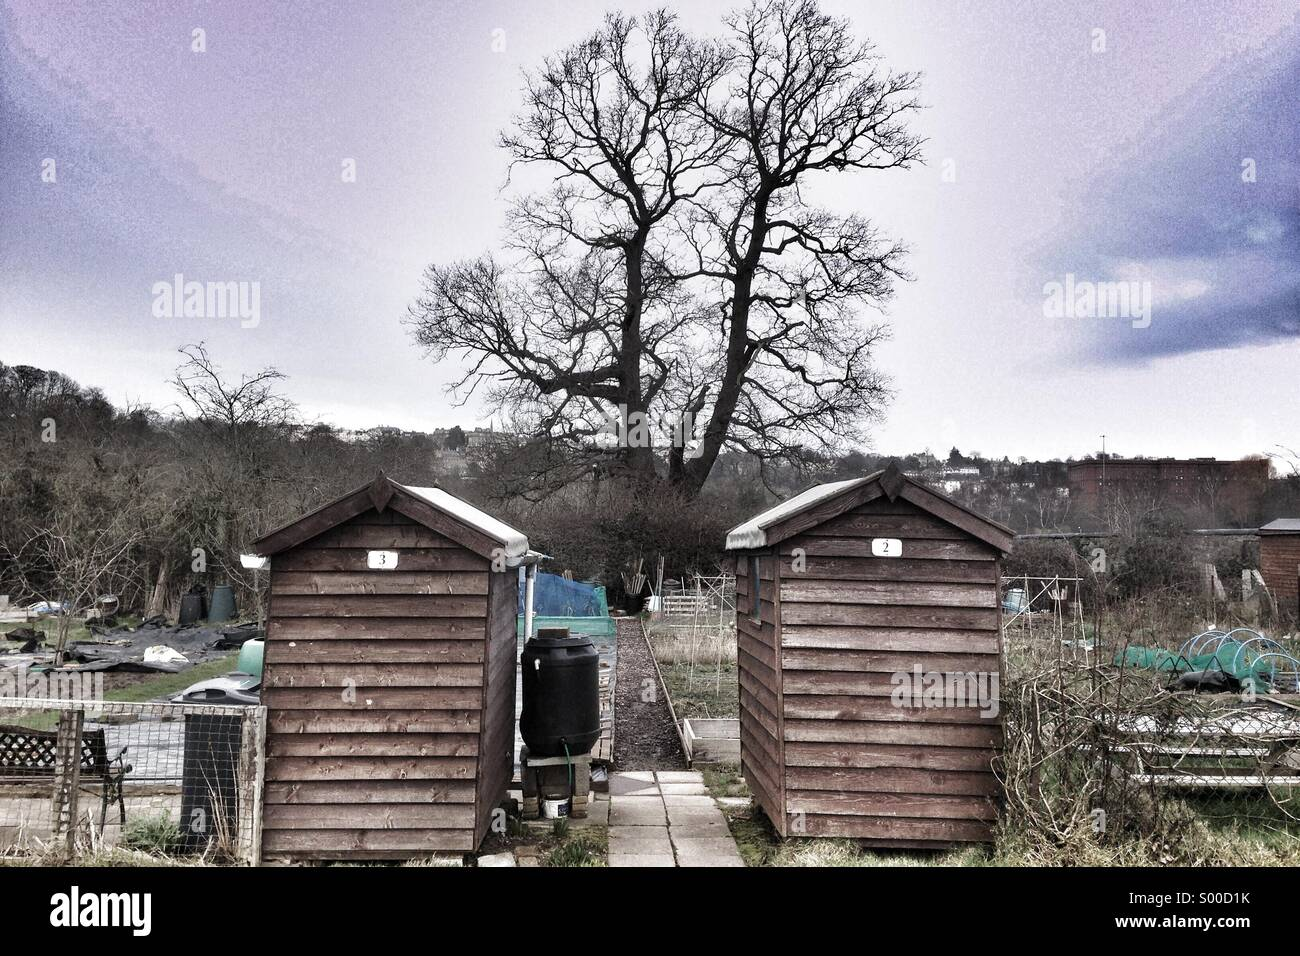 Two allotment sheds with tree behind. Winter. Stock Photo